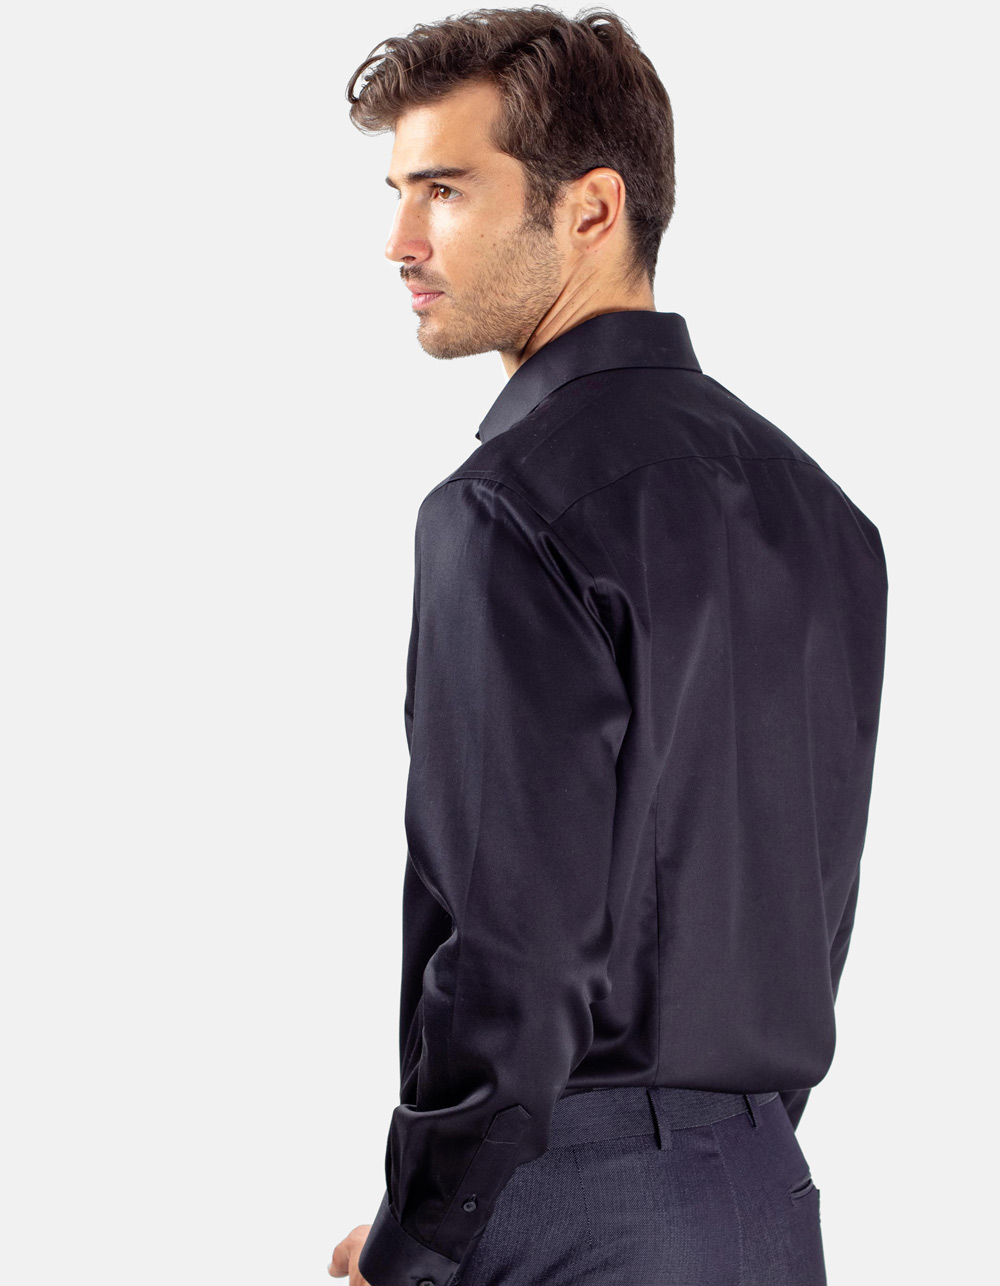 Black plain shirt - Backside